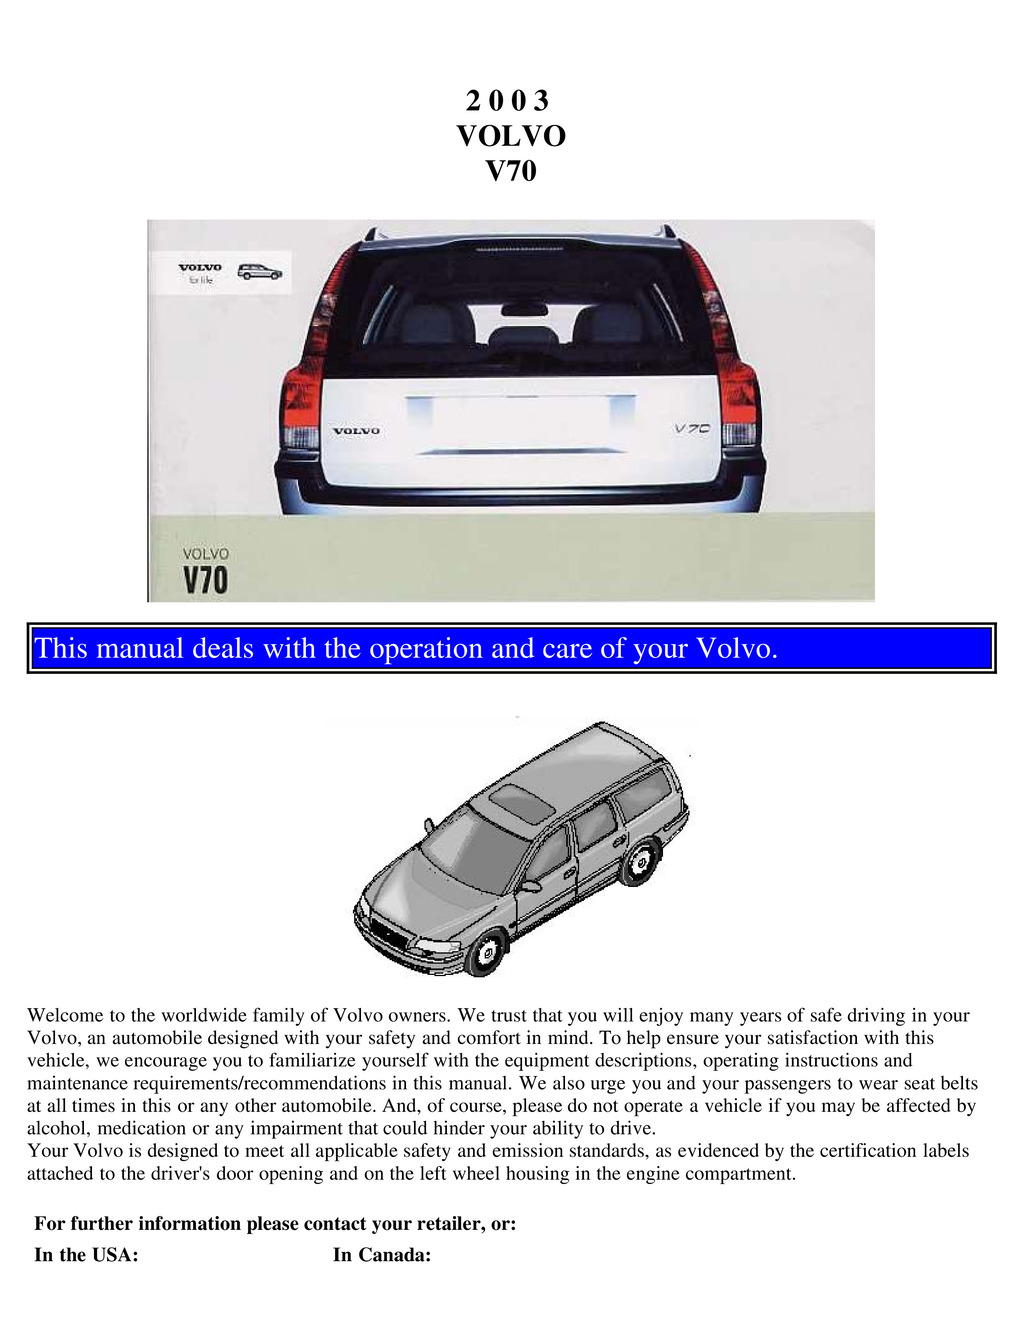 2003 Volvo V70 owners manual